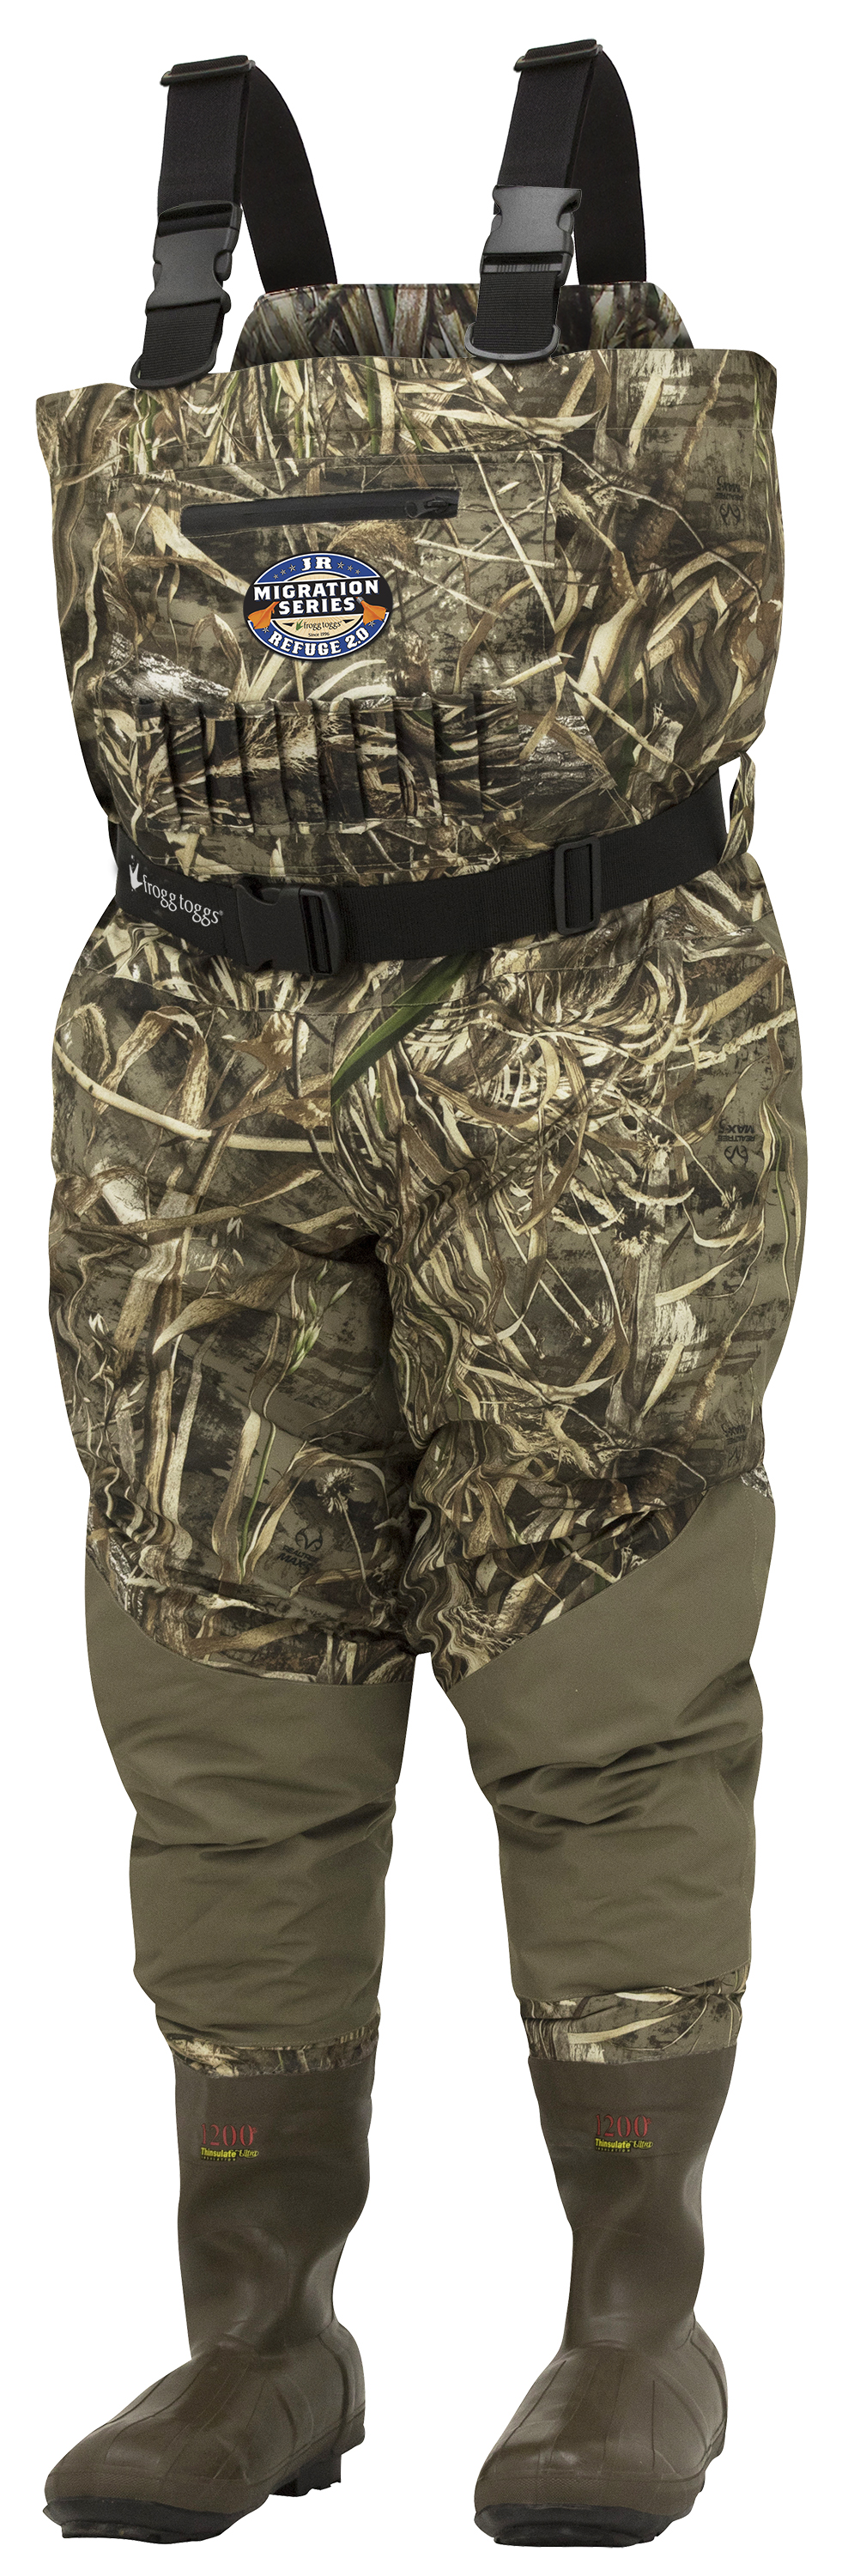 Grand Refuge 2.0 JR Boot Foot Wader by Frogg Toggs